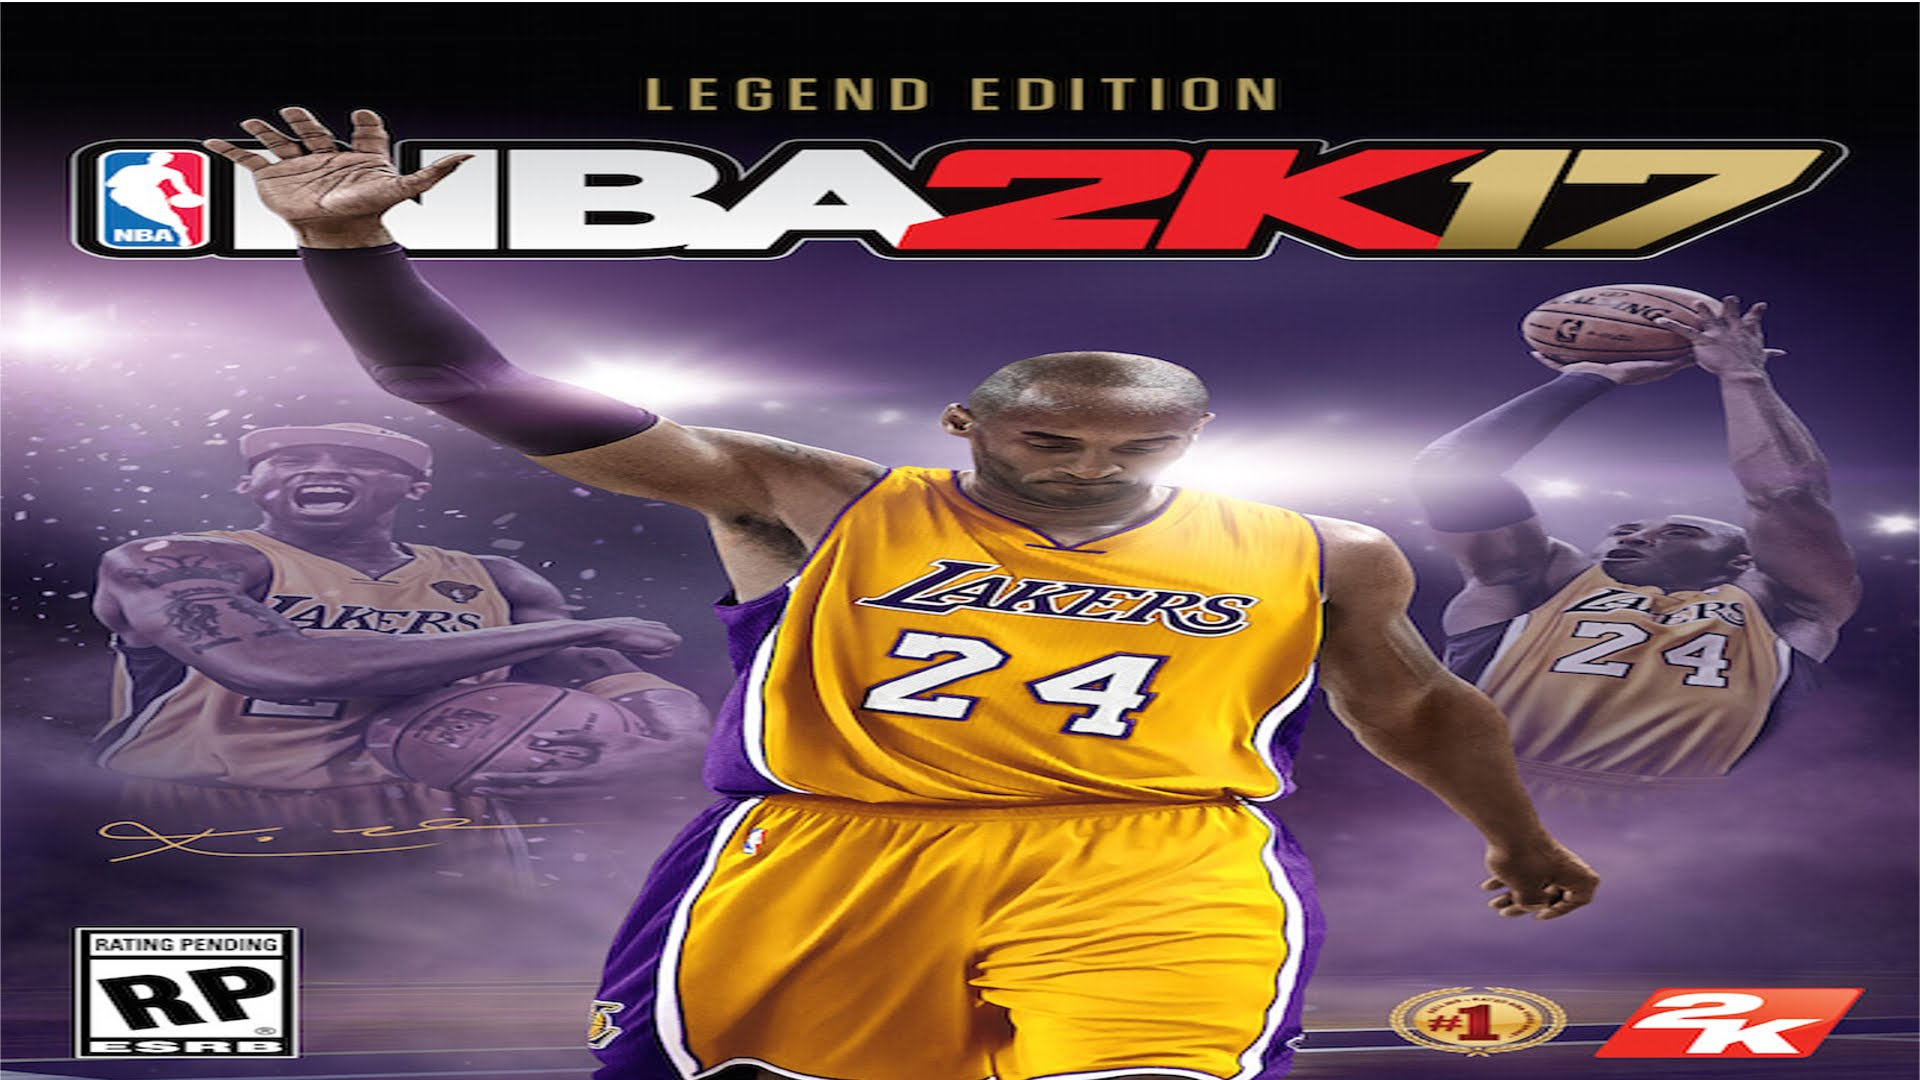 Nba 2k17 Wallpapers: Kobe Bryant Will Be On The NBA 2K17 Legend Edition Cover